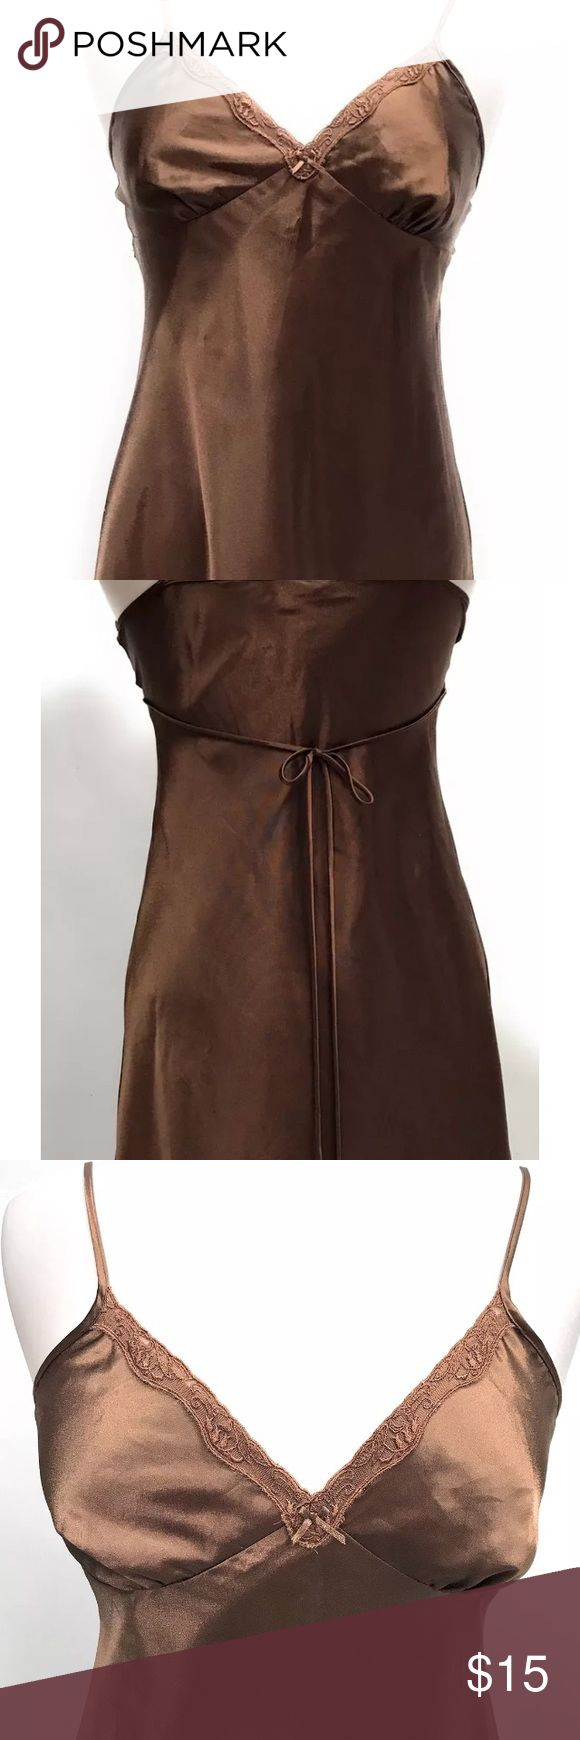 ADONNA Womens Nightie Silky Chocolate A-Line Small ADONNA Womens Nightie Silky Lingerie Chocolate Brown A-Line Ties in Back Size Small. Knee length. Adonna Intimates & Sleepwear Chemises & Slips